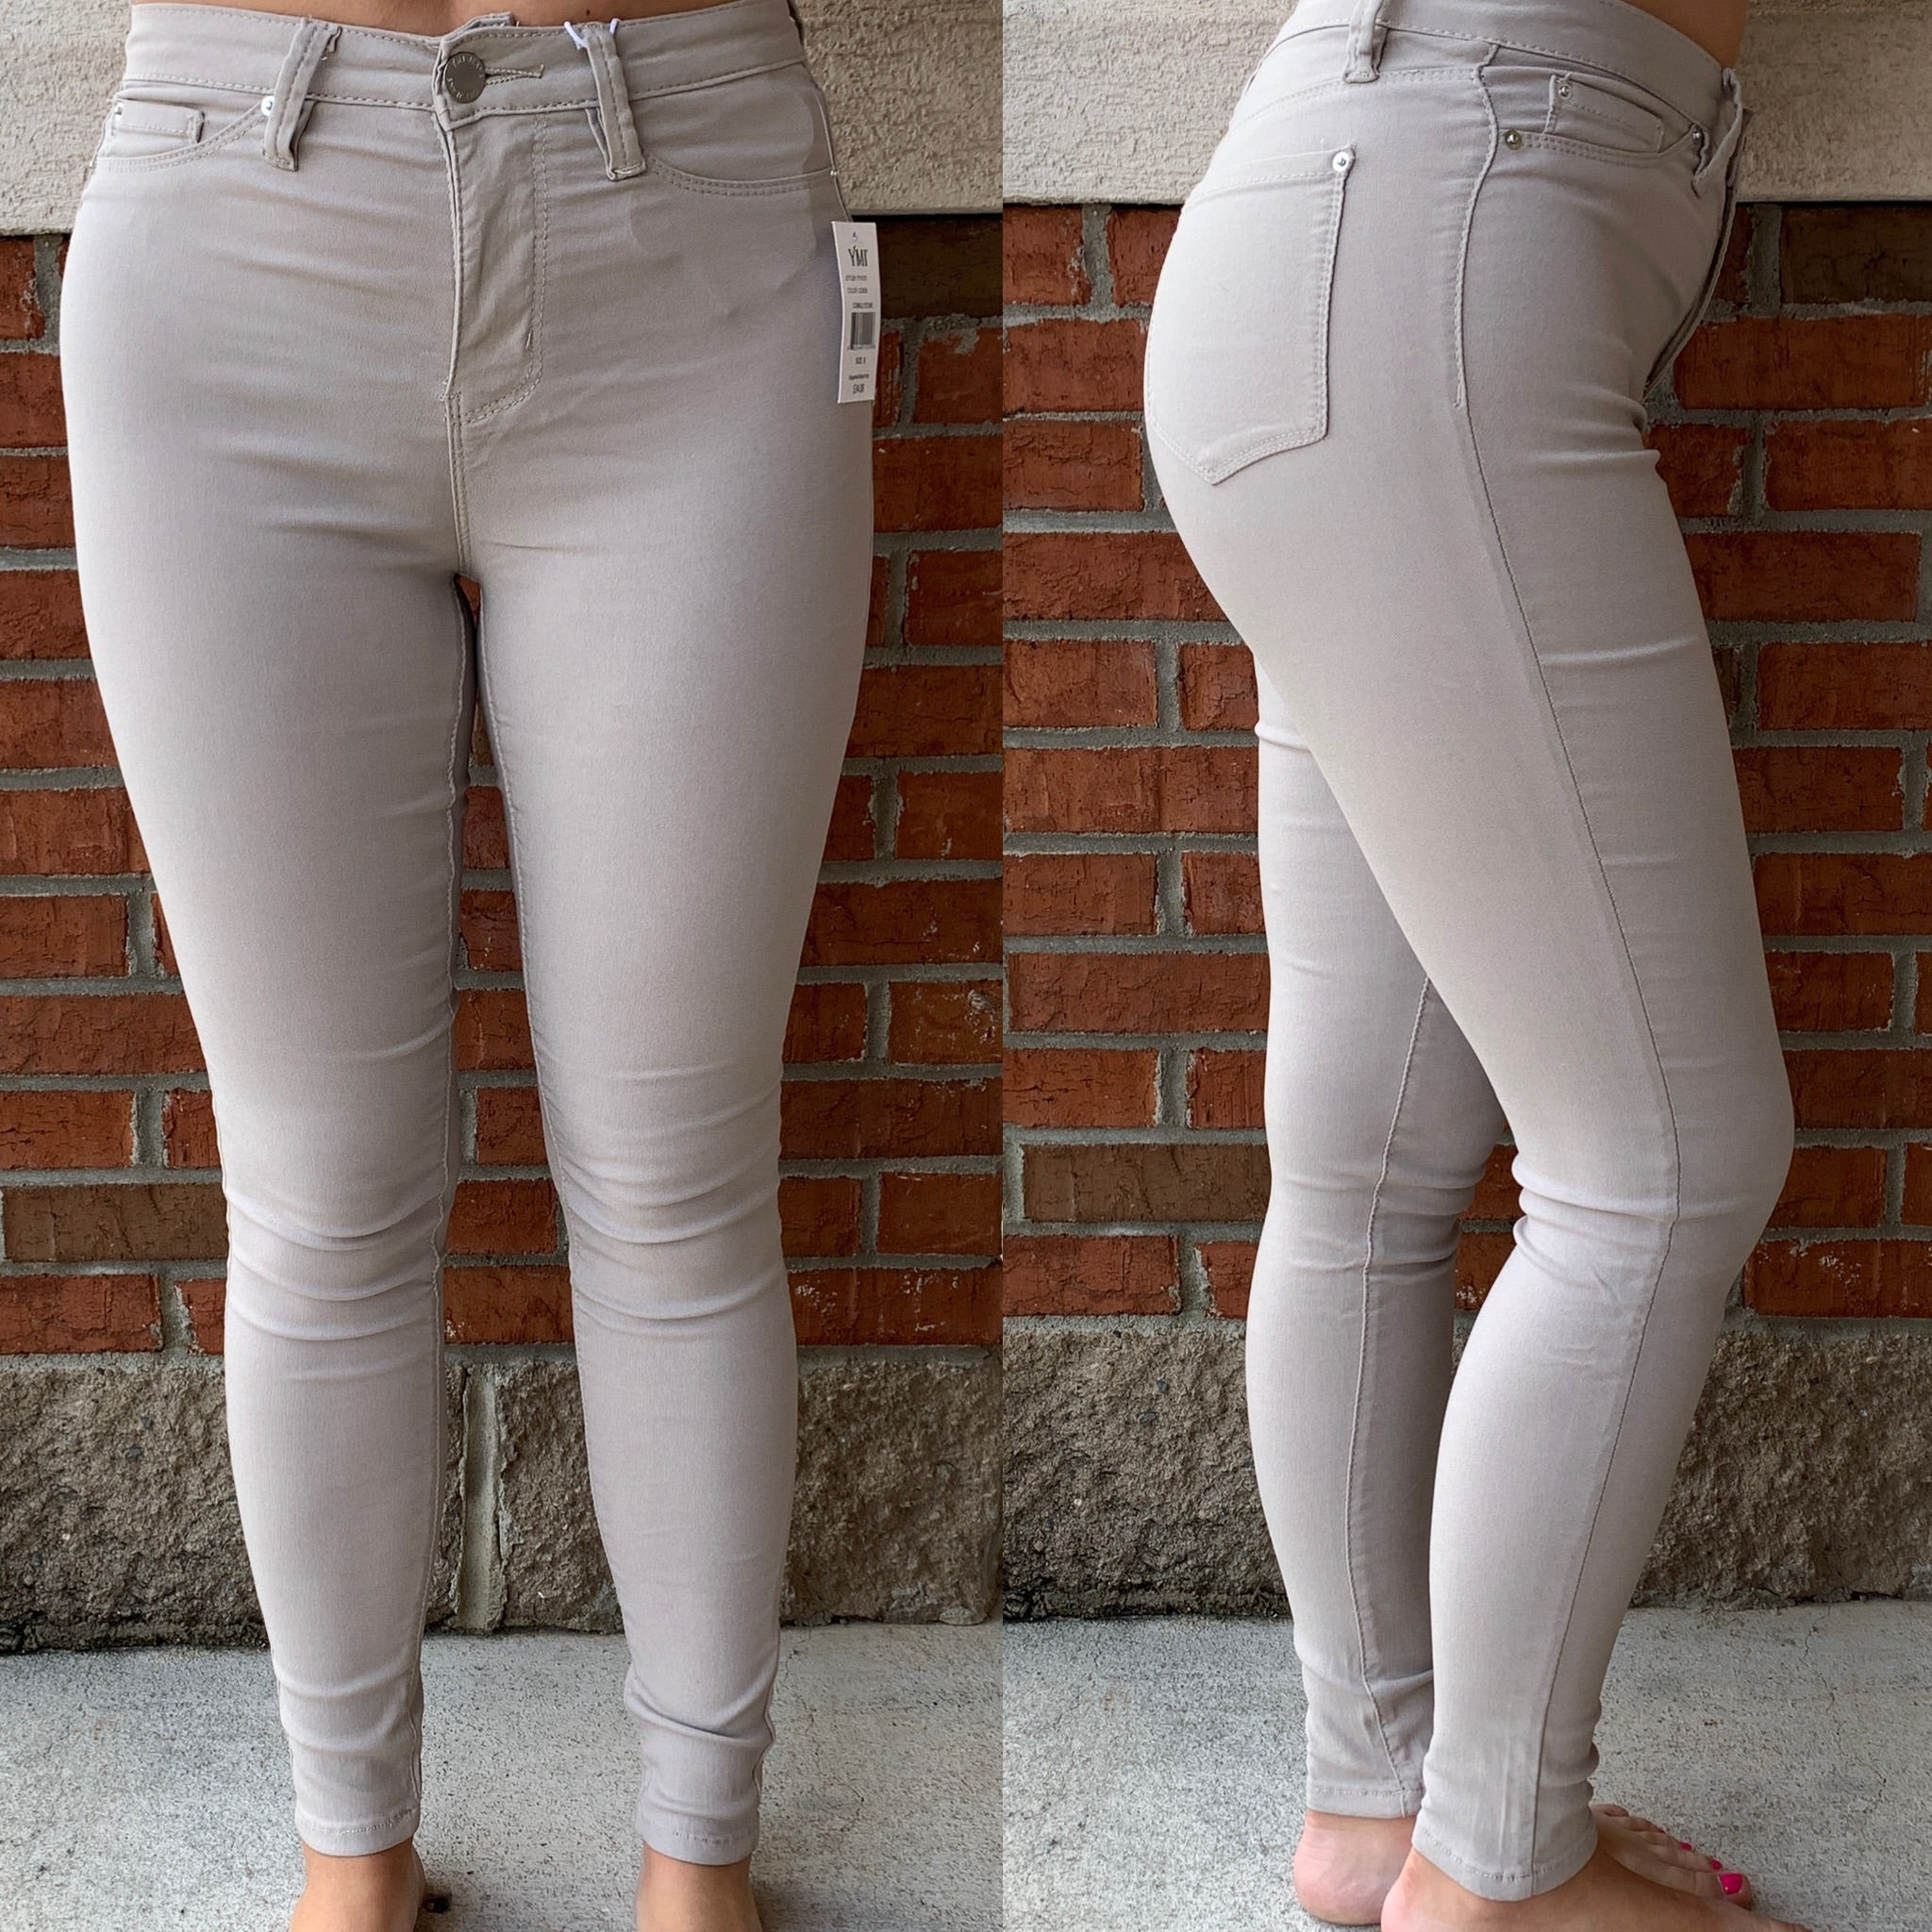 YMI Hyperstretch Skinnies *Final Sale* - Cobble Stone